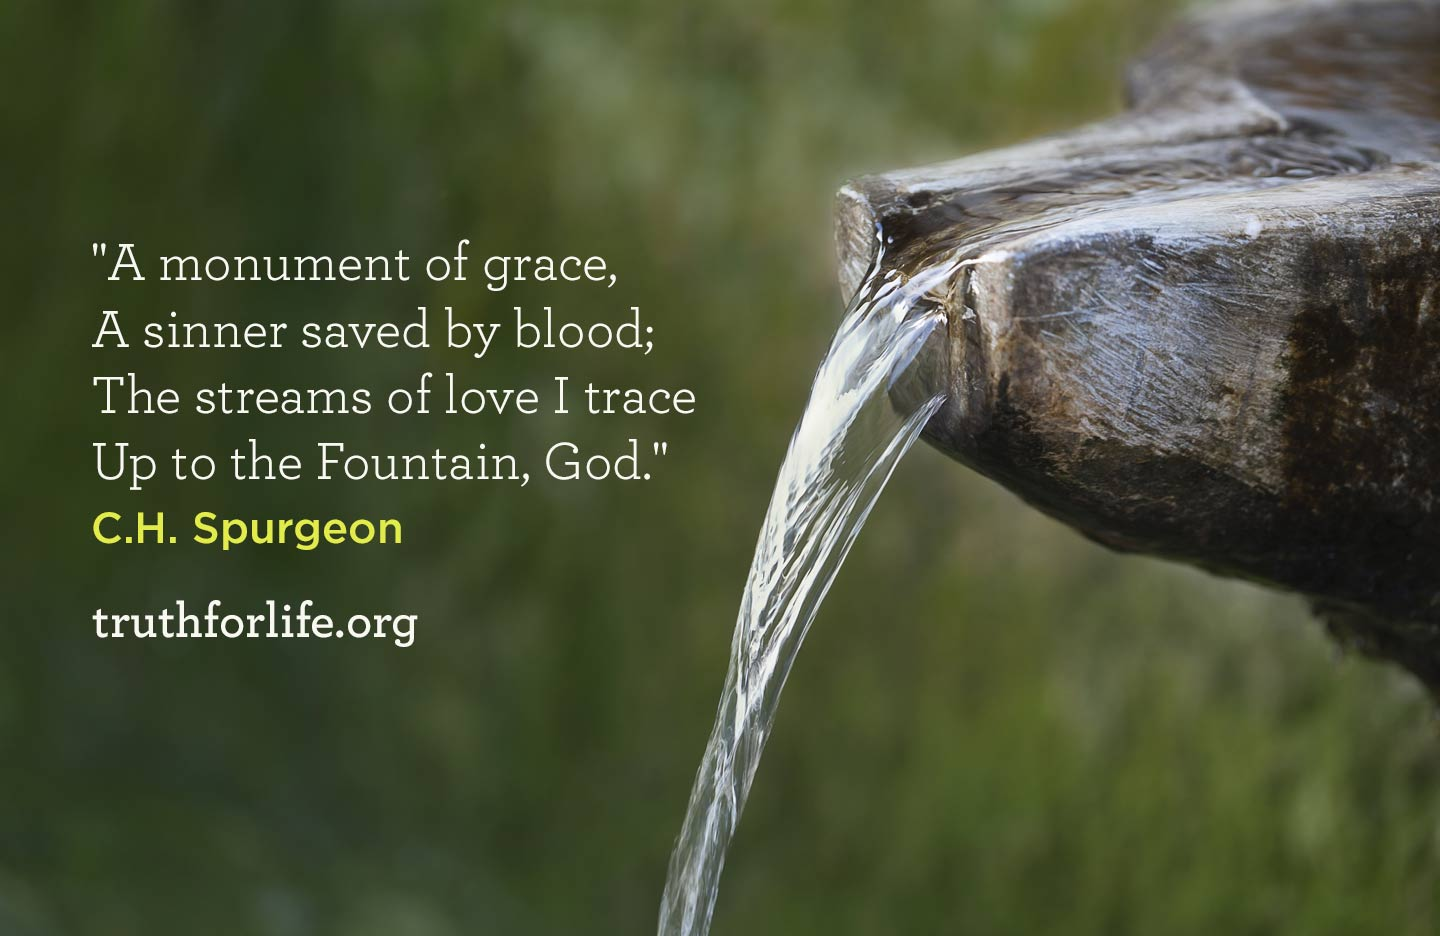 'A monument of grace, a sinner saved by blood; the streams of love I trace up to the Fountain, God' - C.H. Spurgeon